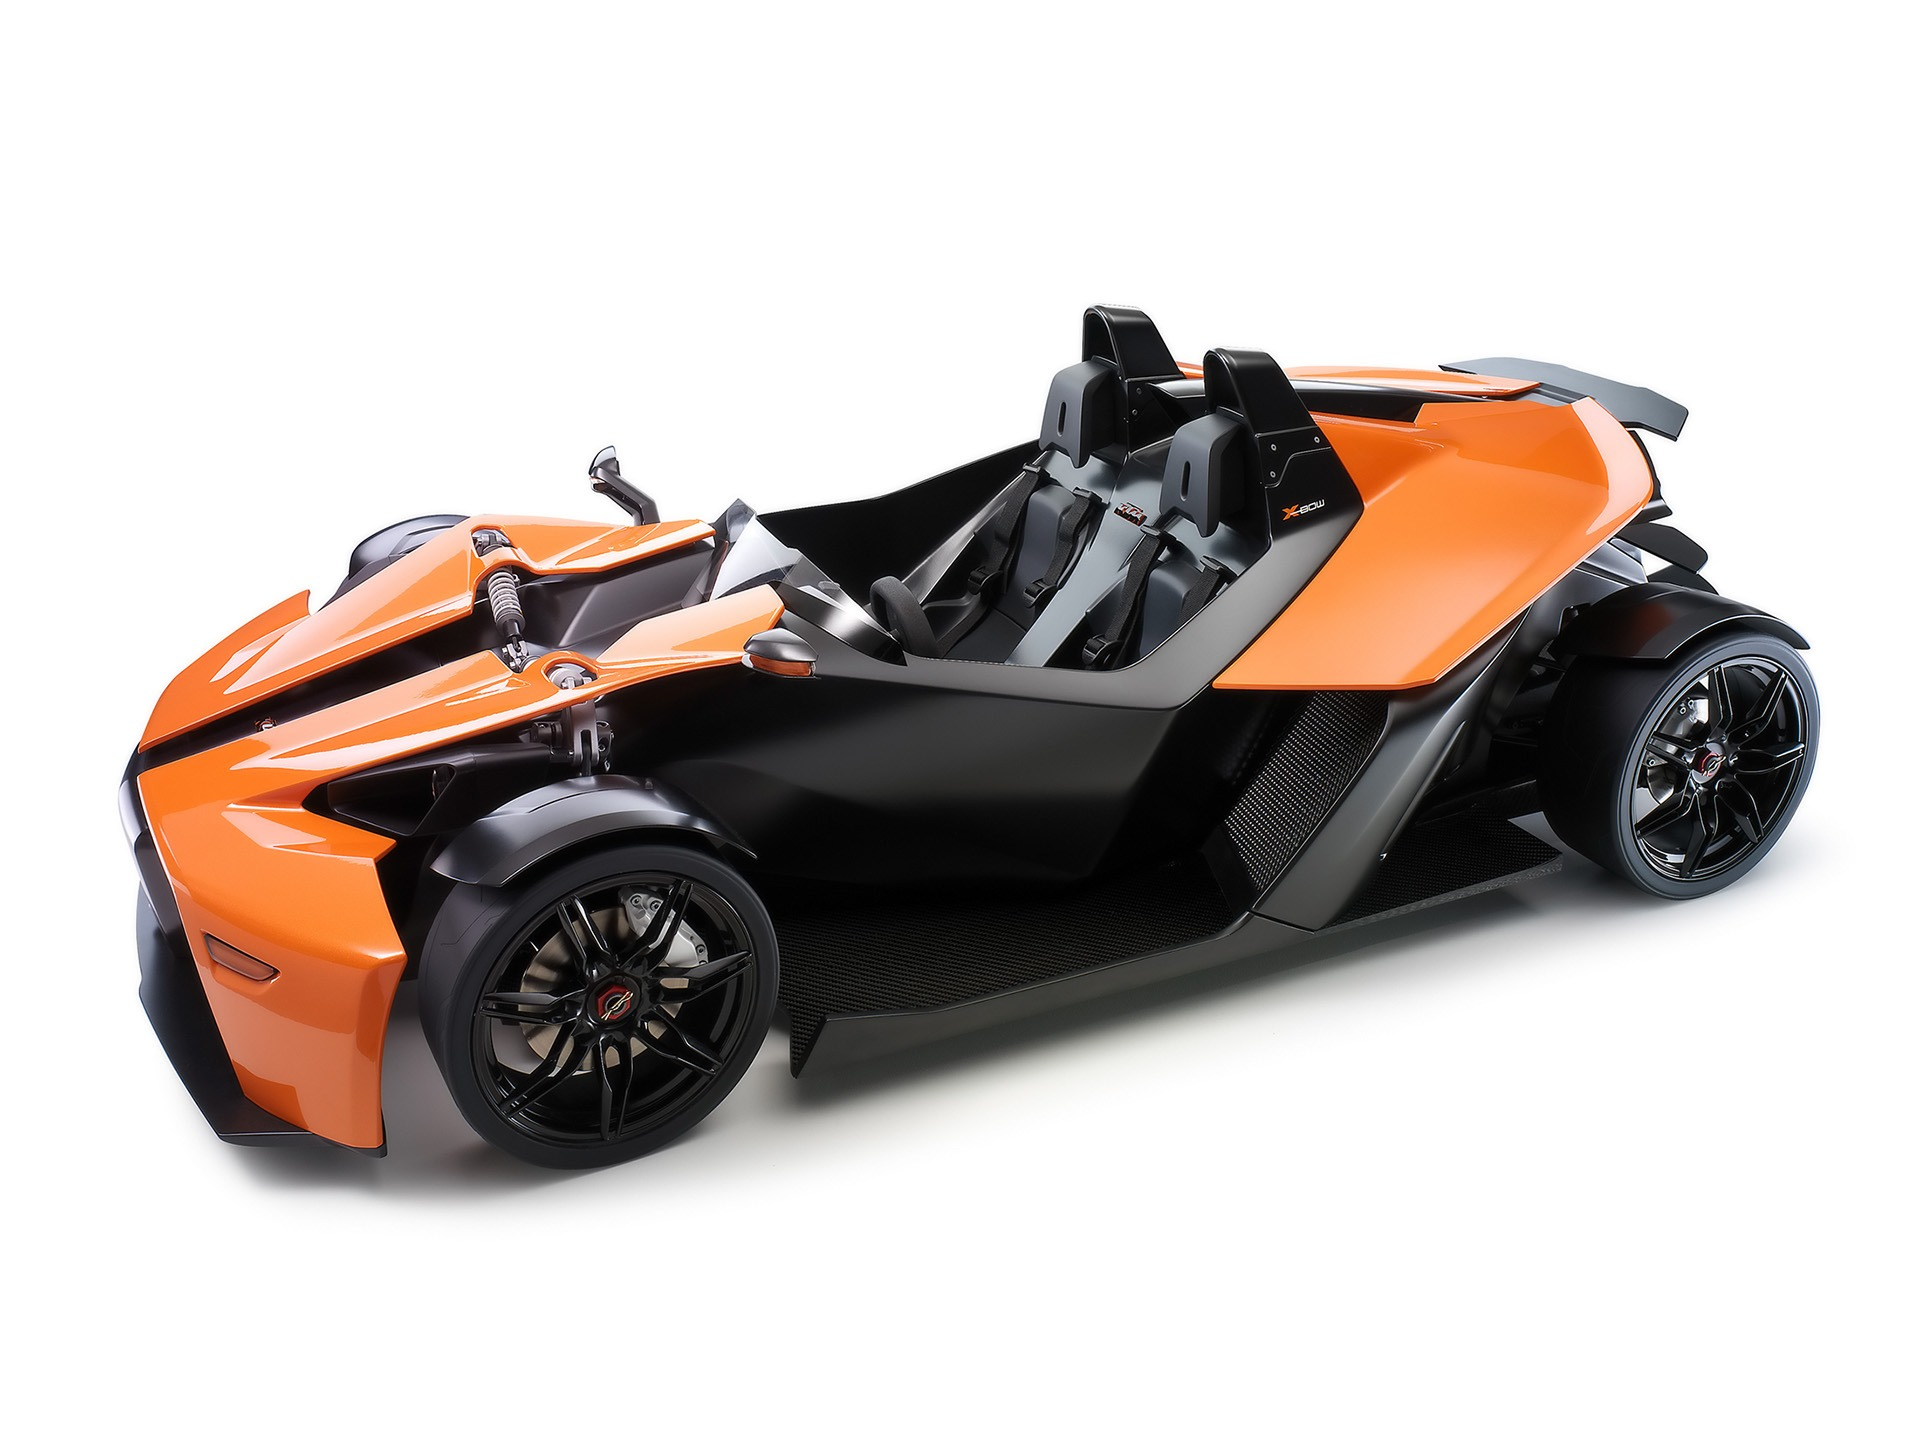 Ktm X Bow Wallpaper Concept Cars Wallpapers In Jpg Format For Free